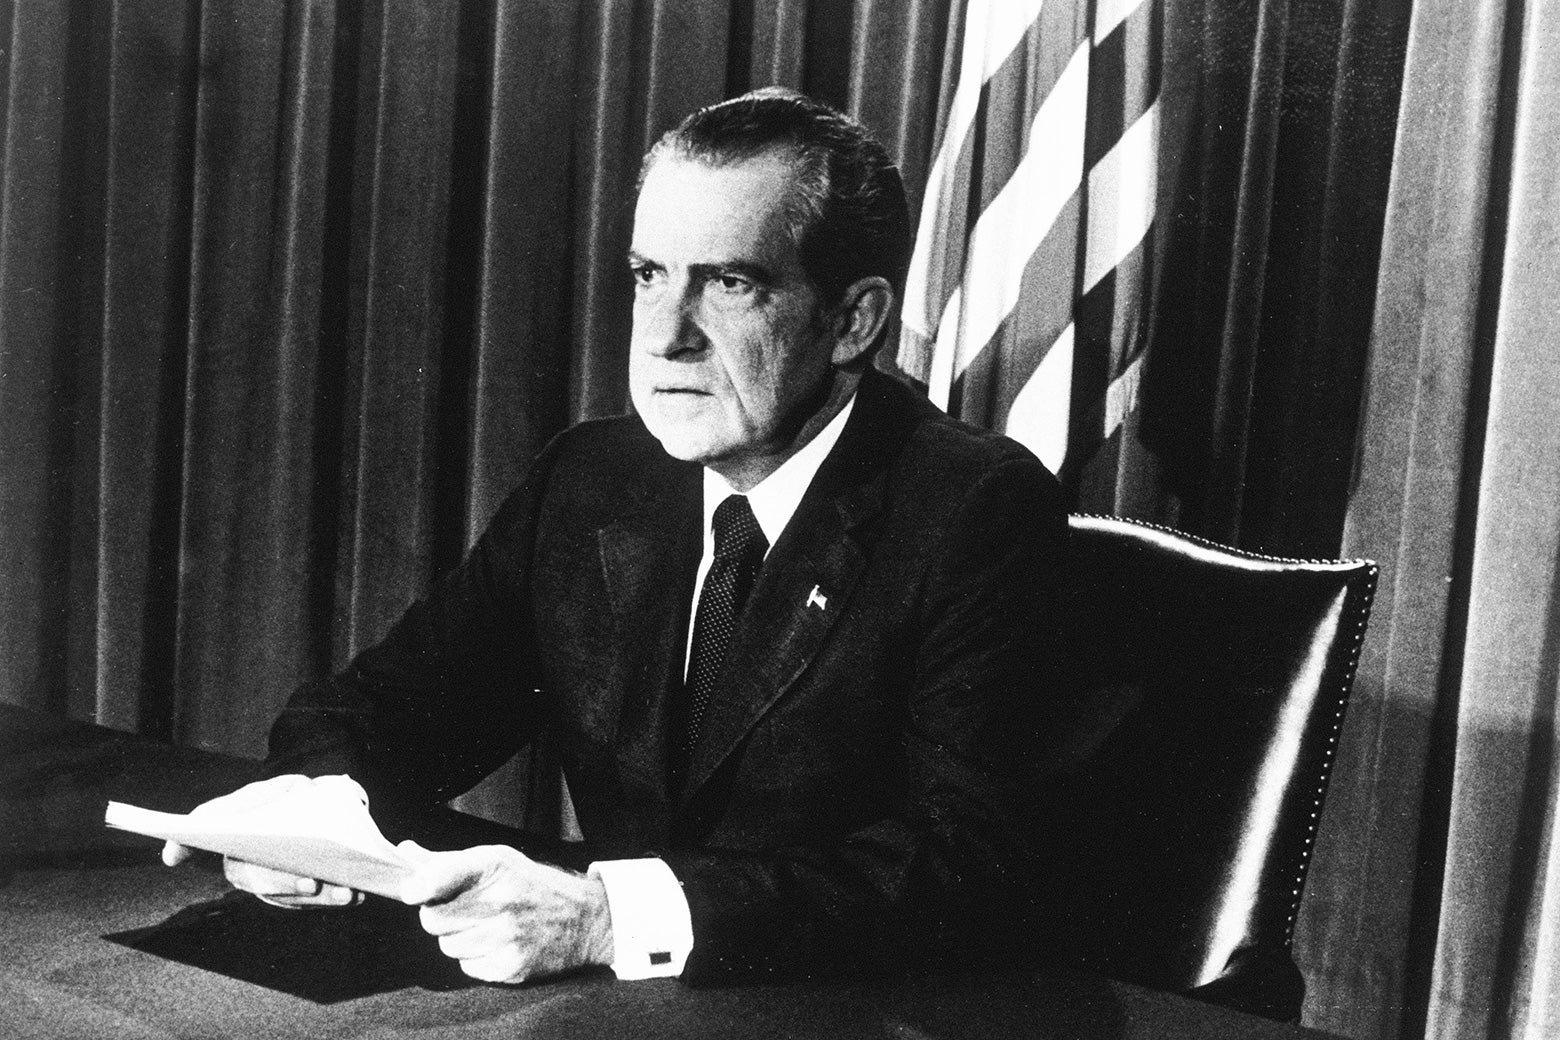 U.S. President Richard M. Nixon sits at a desk, holding papers, as he announces his resignation on television, Washington, D.C.